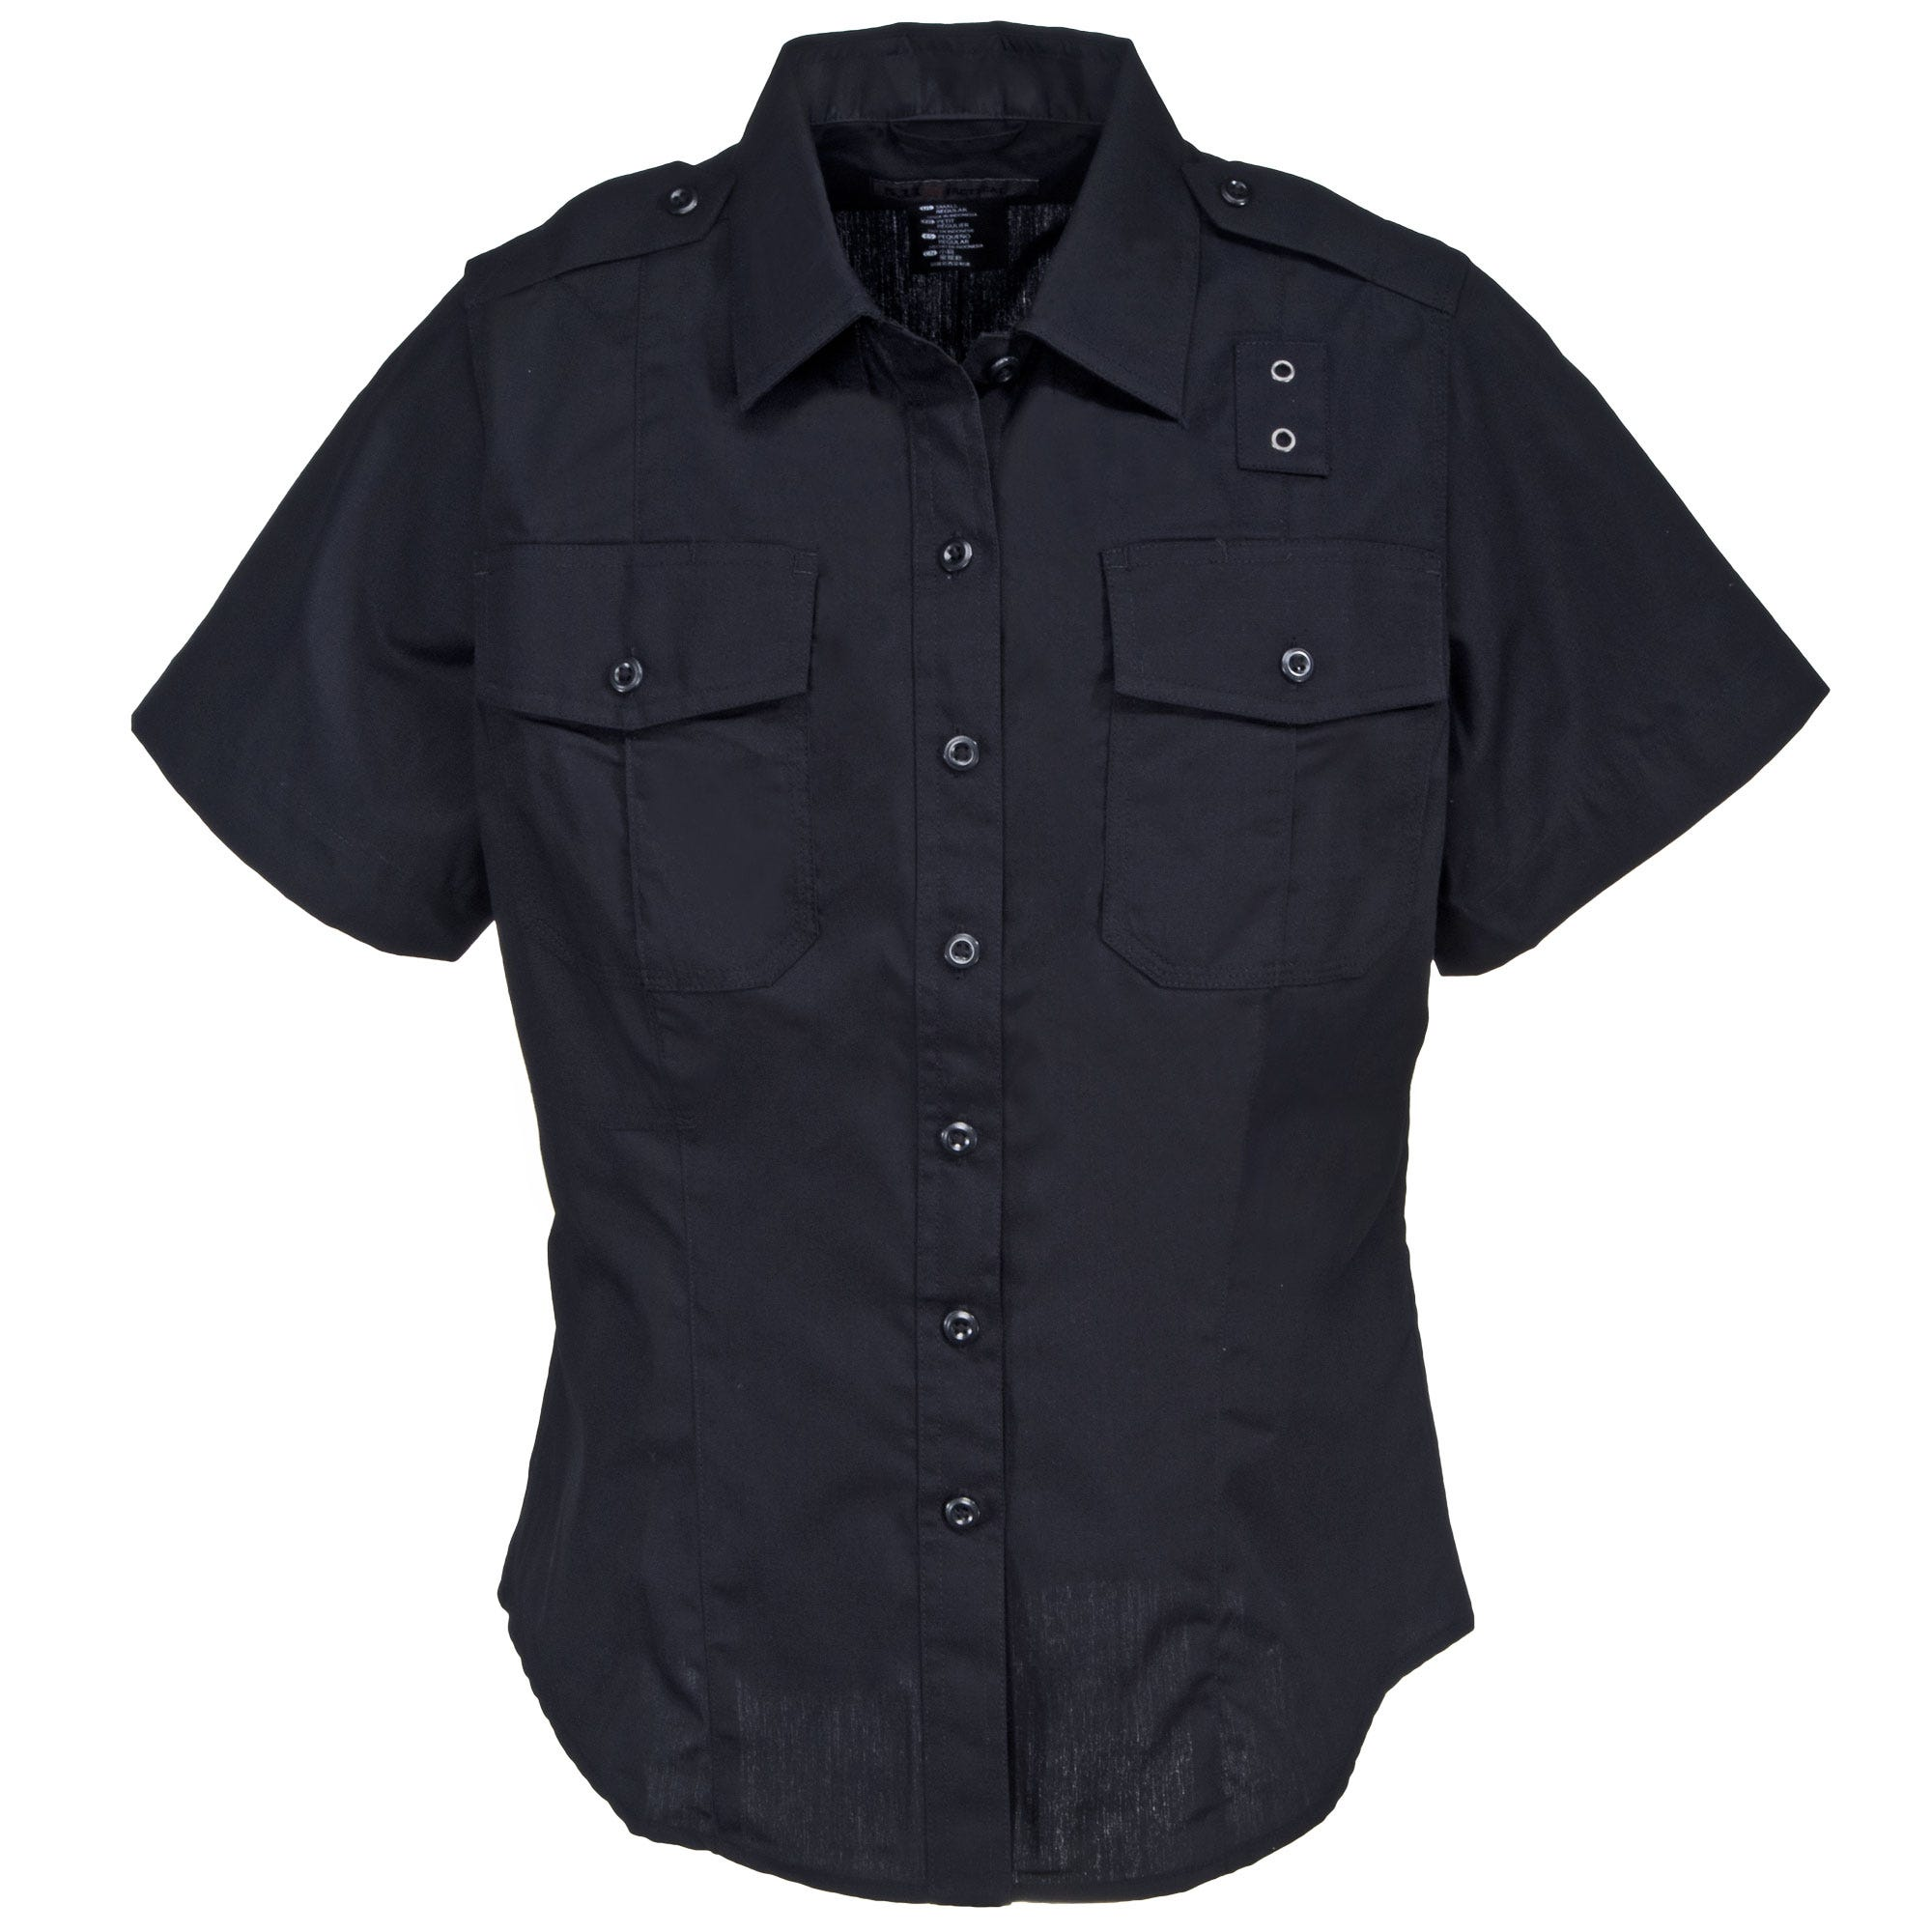 5.11 Tactical Women's Twill 61158 750 Midnight Navy Short Sleeve Shirt